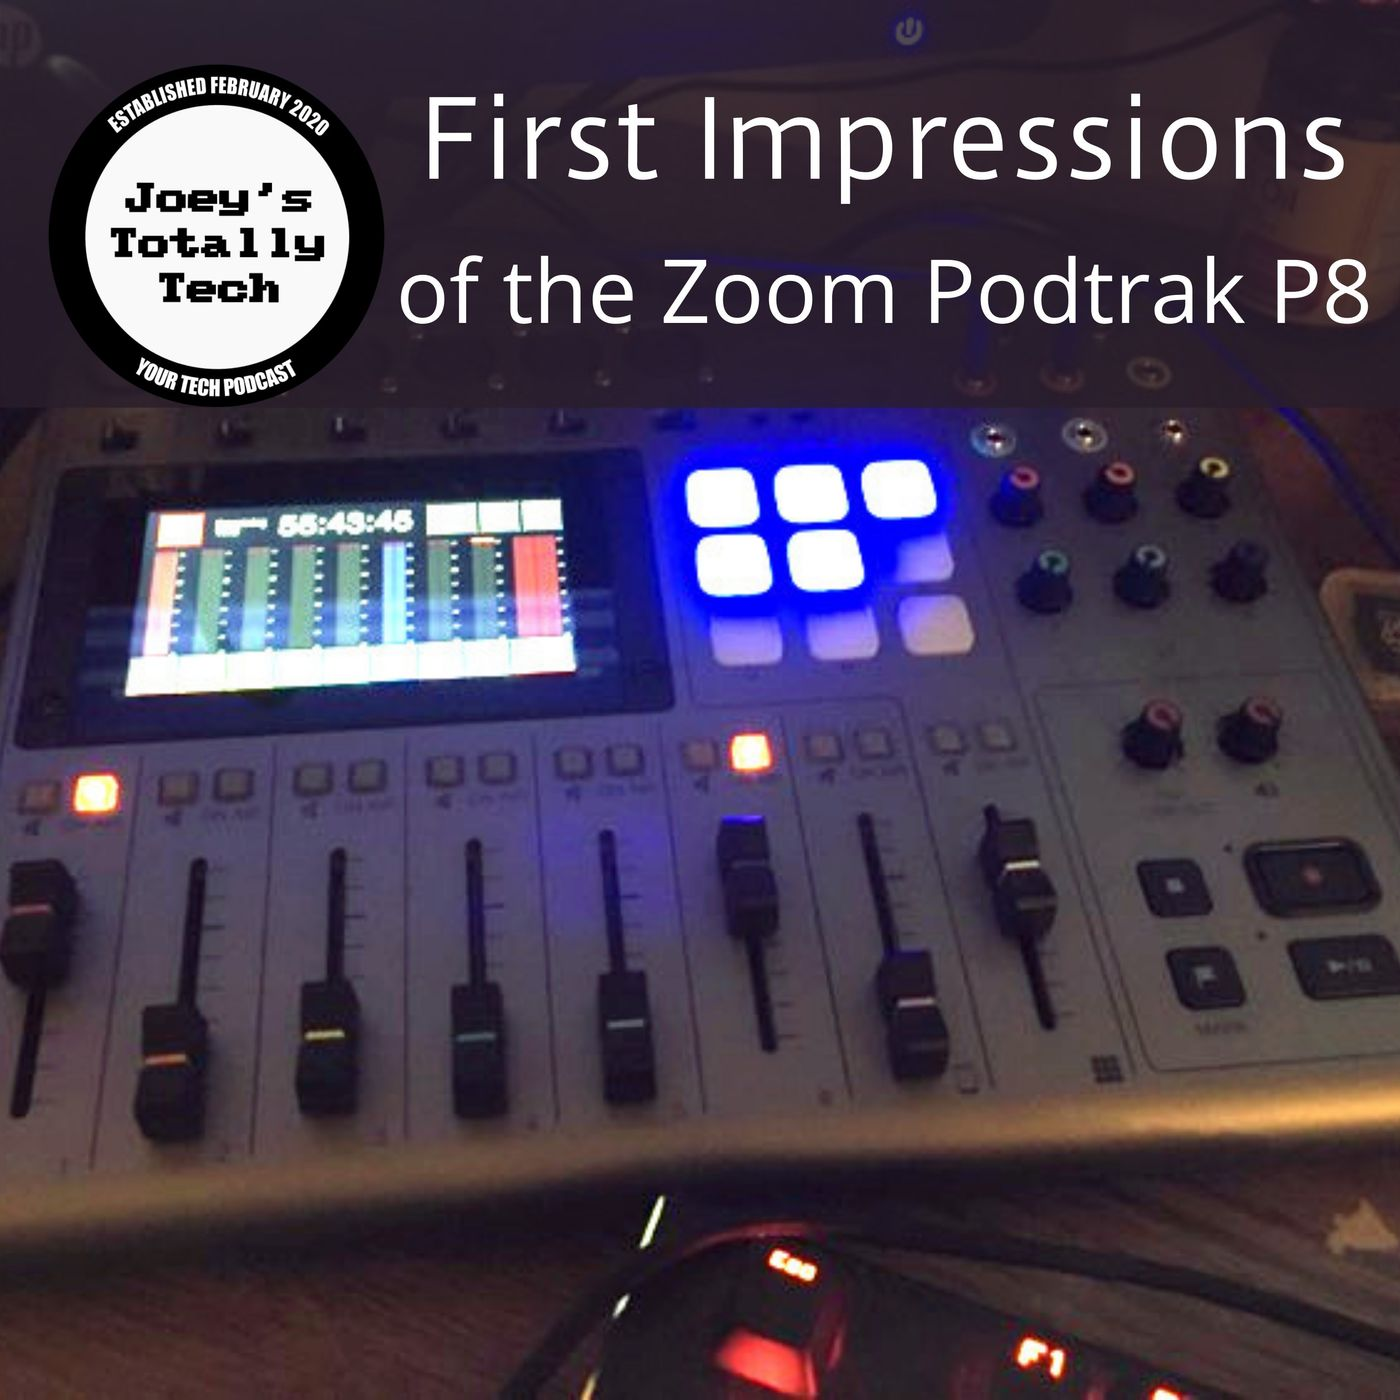 First Impressions of the Zoom Podtrak P8